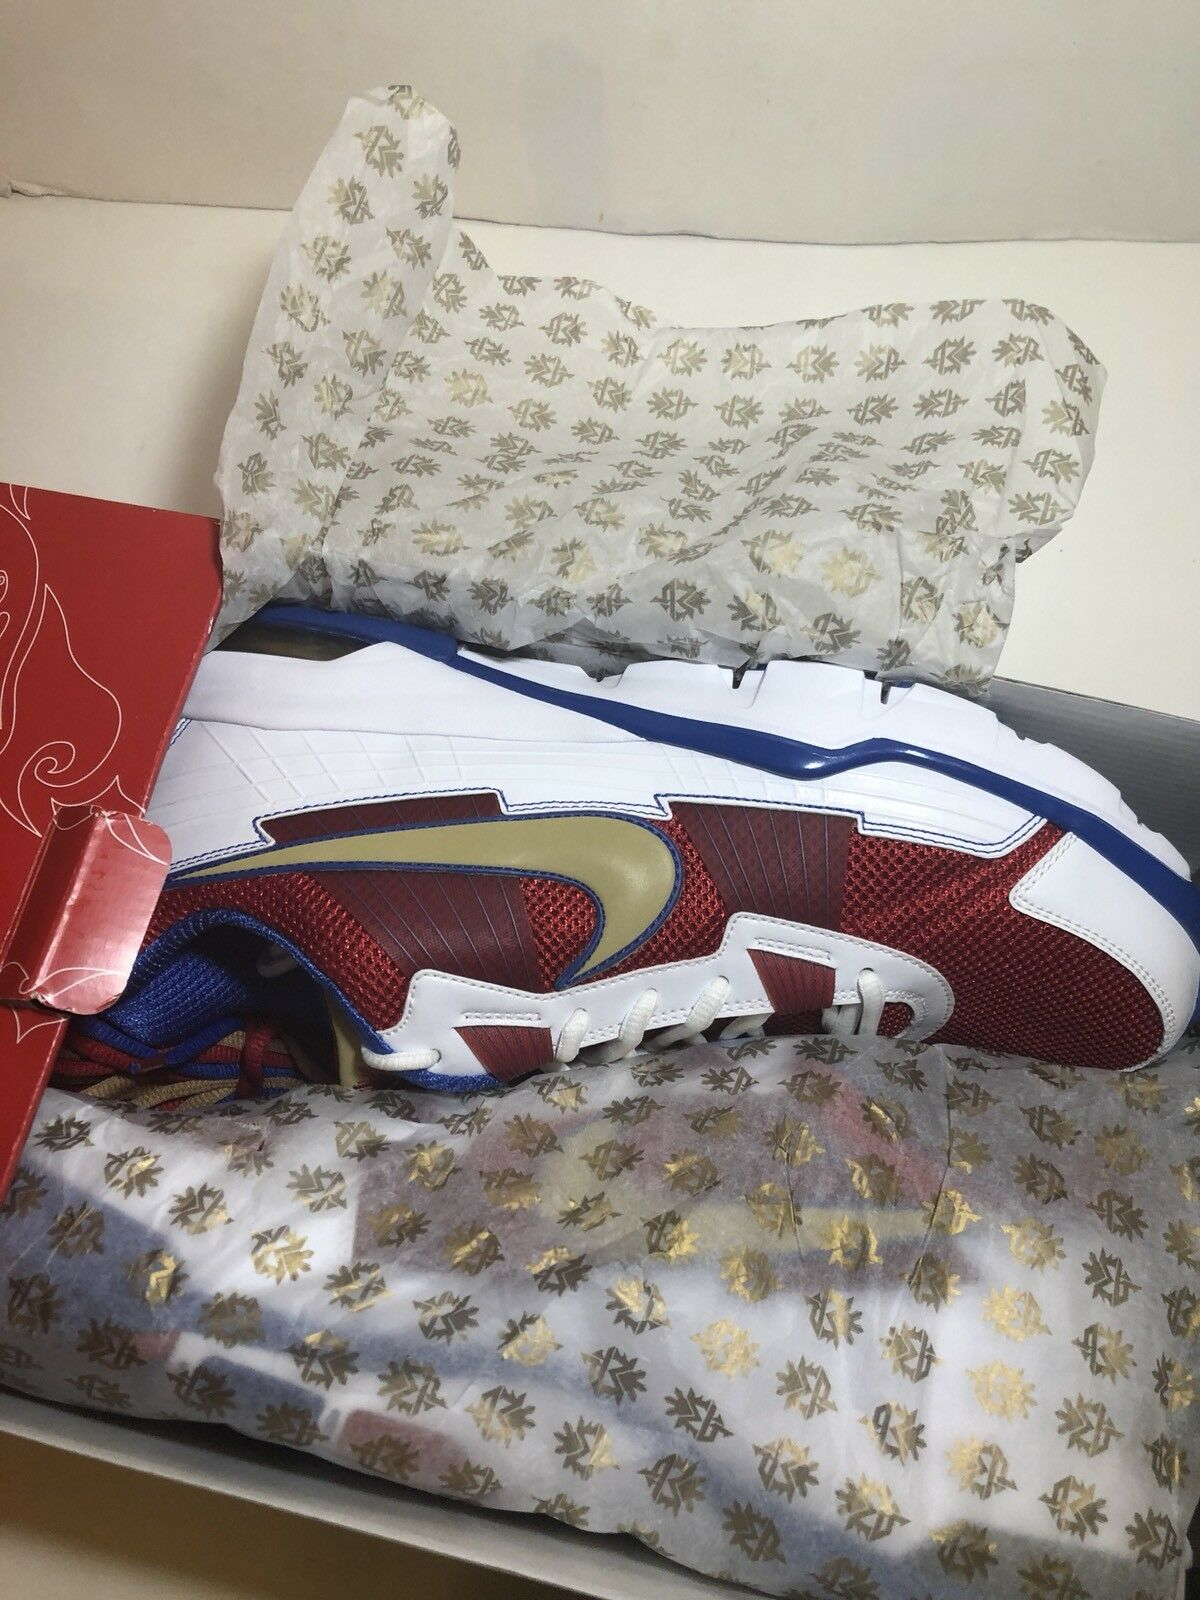 2010 Nike Air Max Trainer SC Low 407846-176 Pac Man Manny Pacquiao Size 14